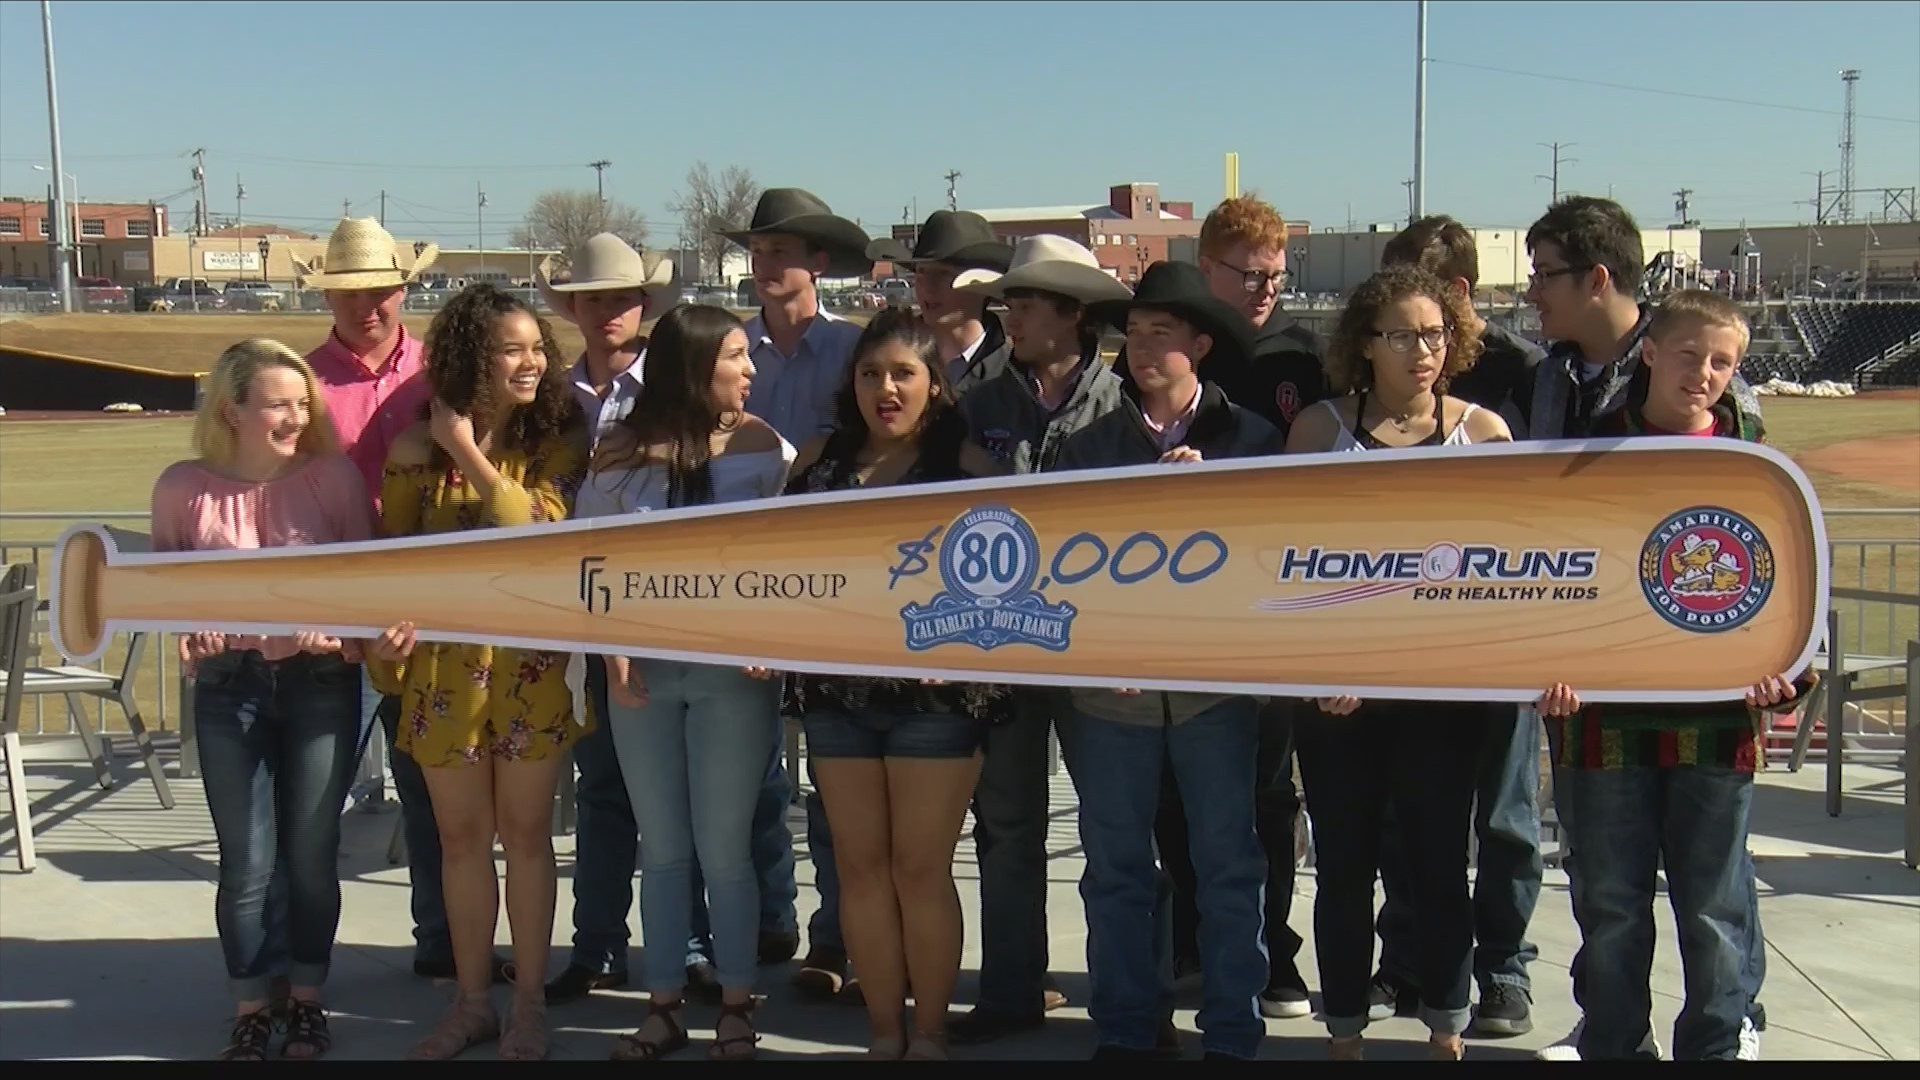 Sod Poodles Announce Partnership With Boys Ranch and Fairly Group